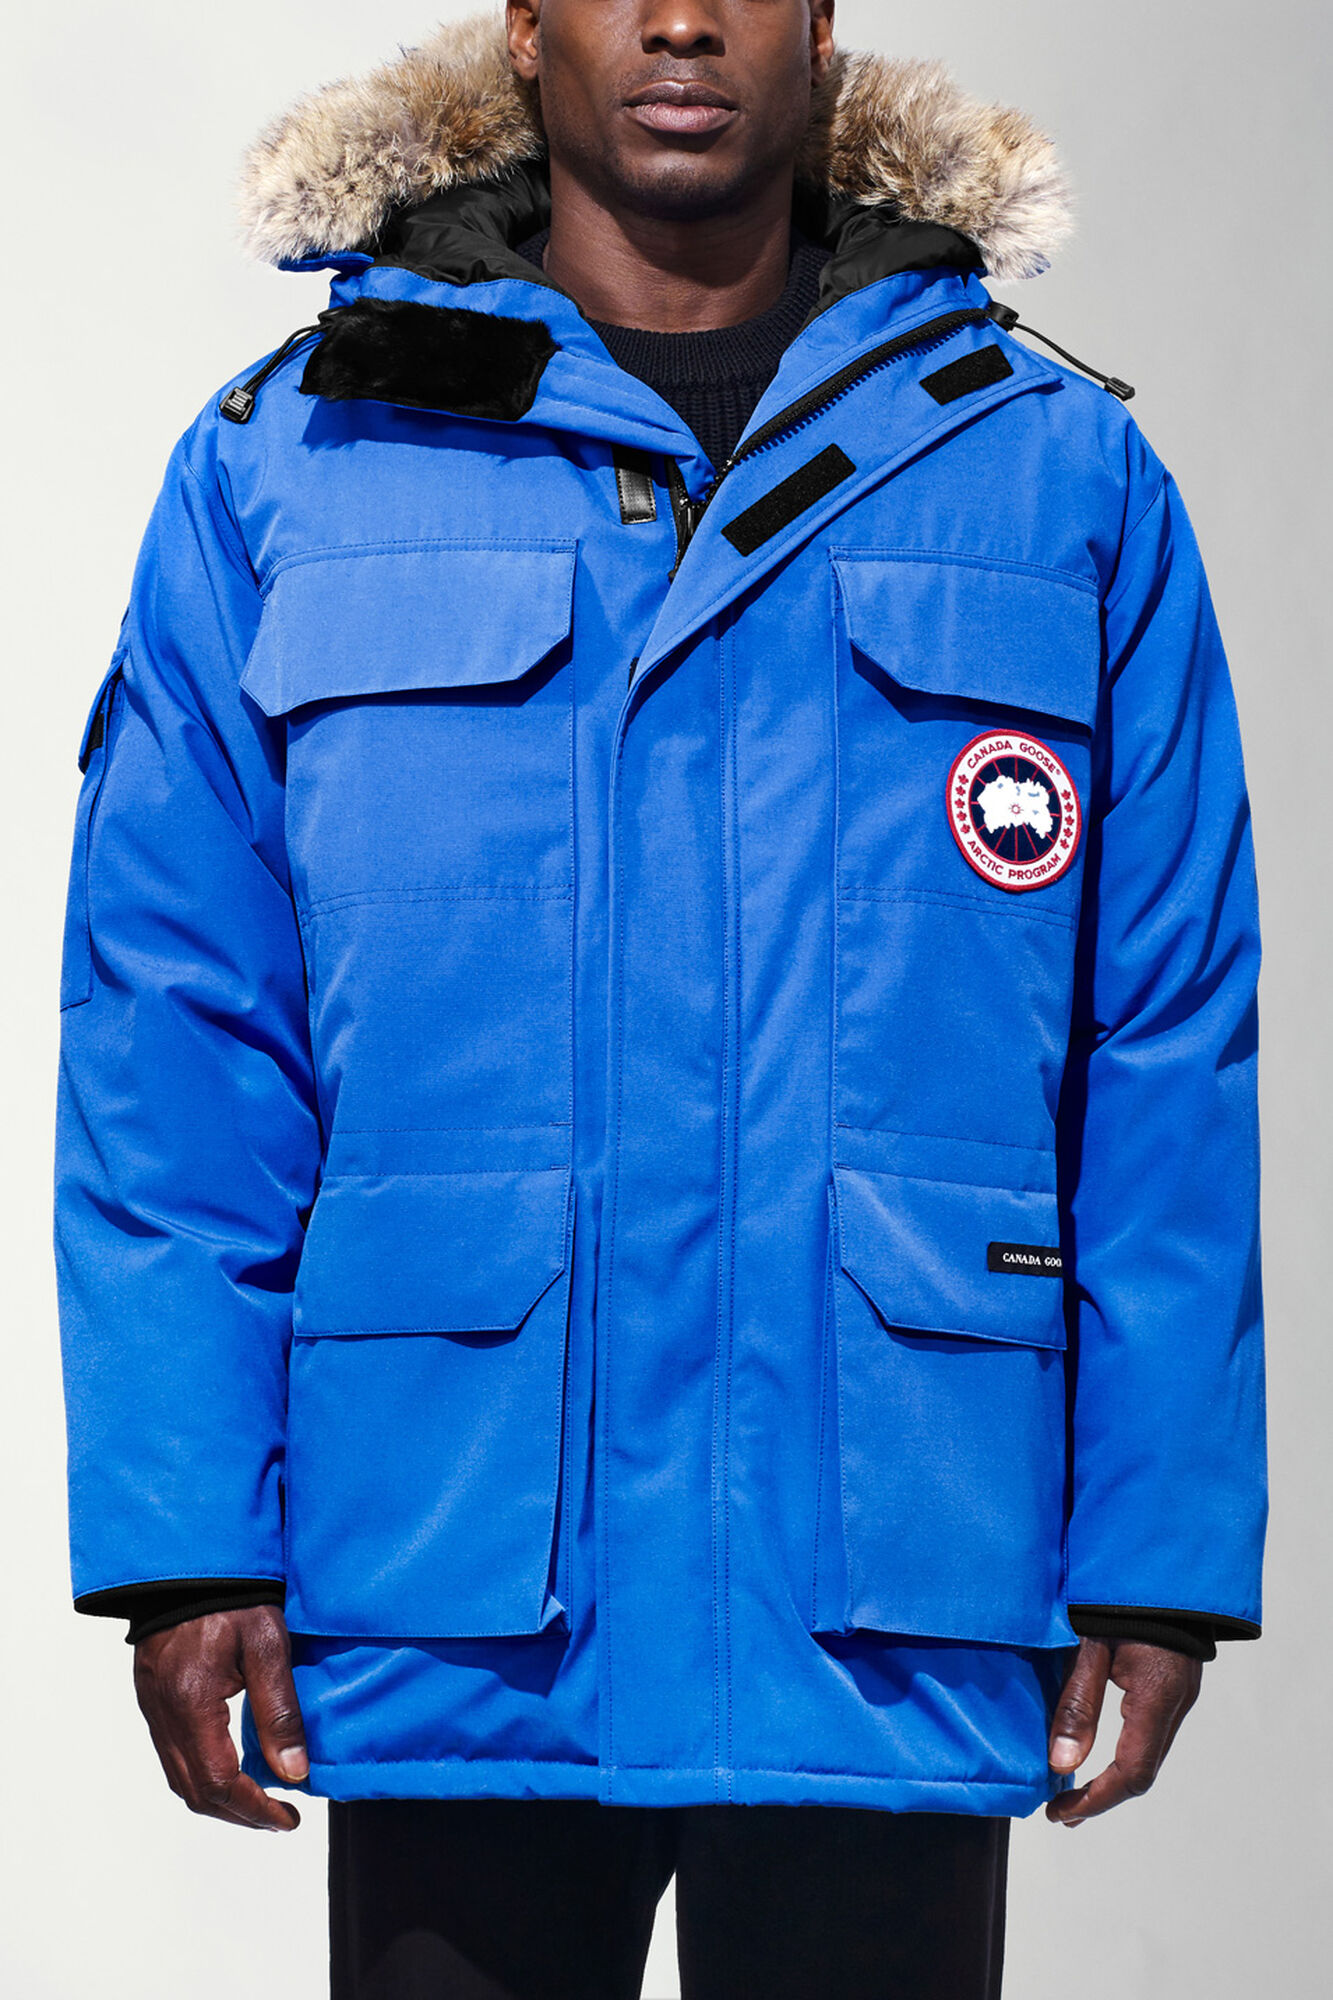 Canada Goose parka replica fake - Men's Polar Bears International PBI Expedition Parka | Canada Goose?